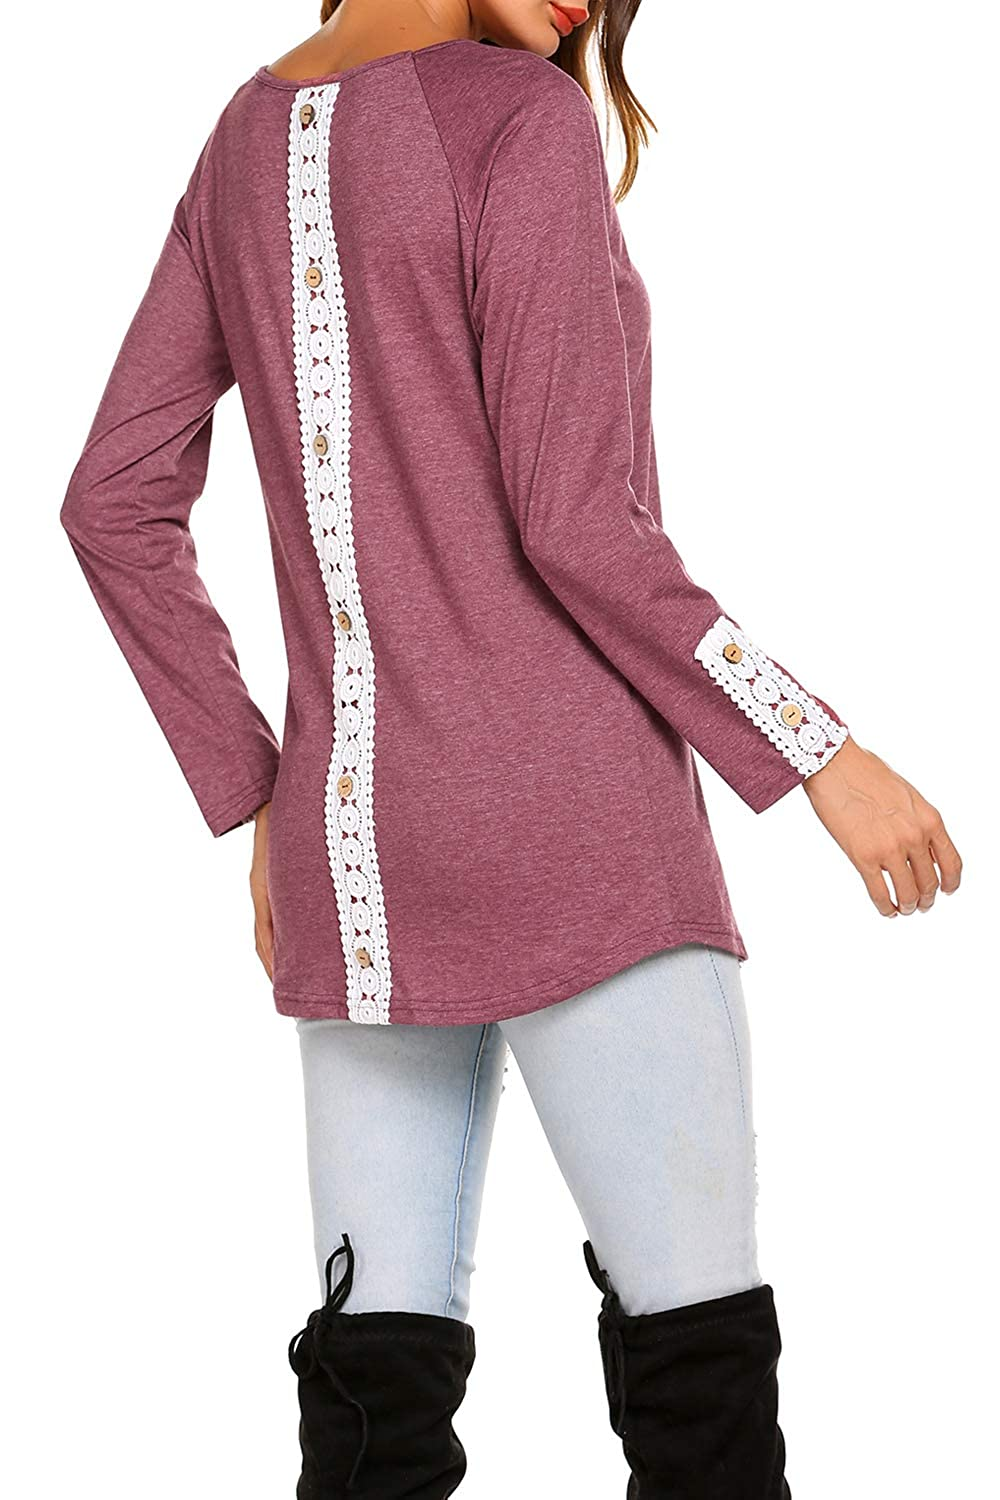 e9509943fa BLUETIME Women Casual Back Lace Solid Tunic Tops Long Sleeve T-Shirts  Blouses with Buttons at Amazon Women's Clothing store: